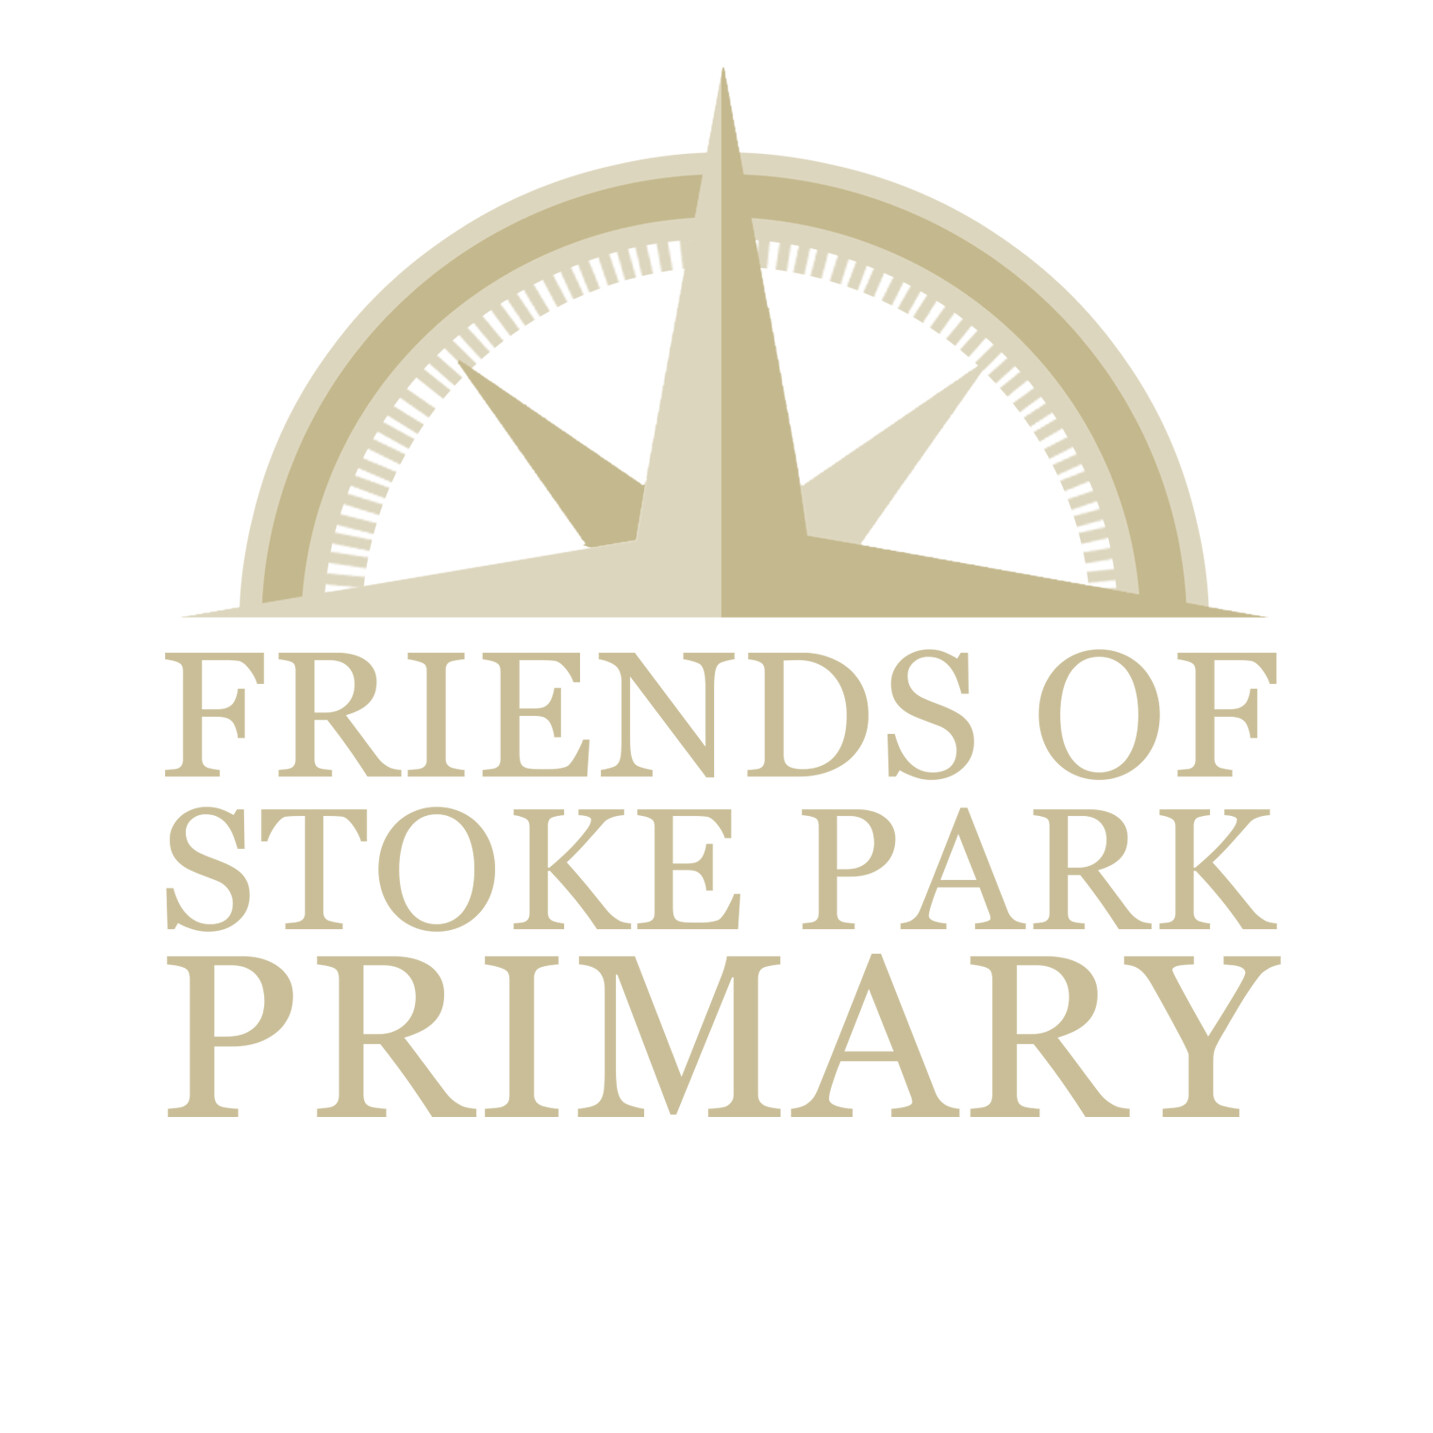 Friends of Stoke Park Primary